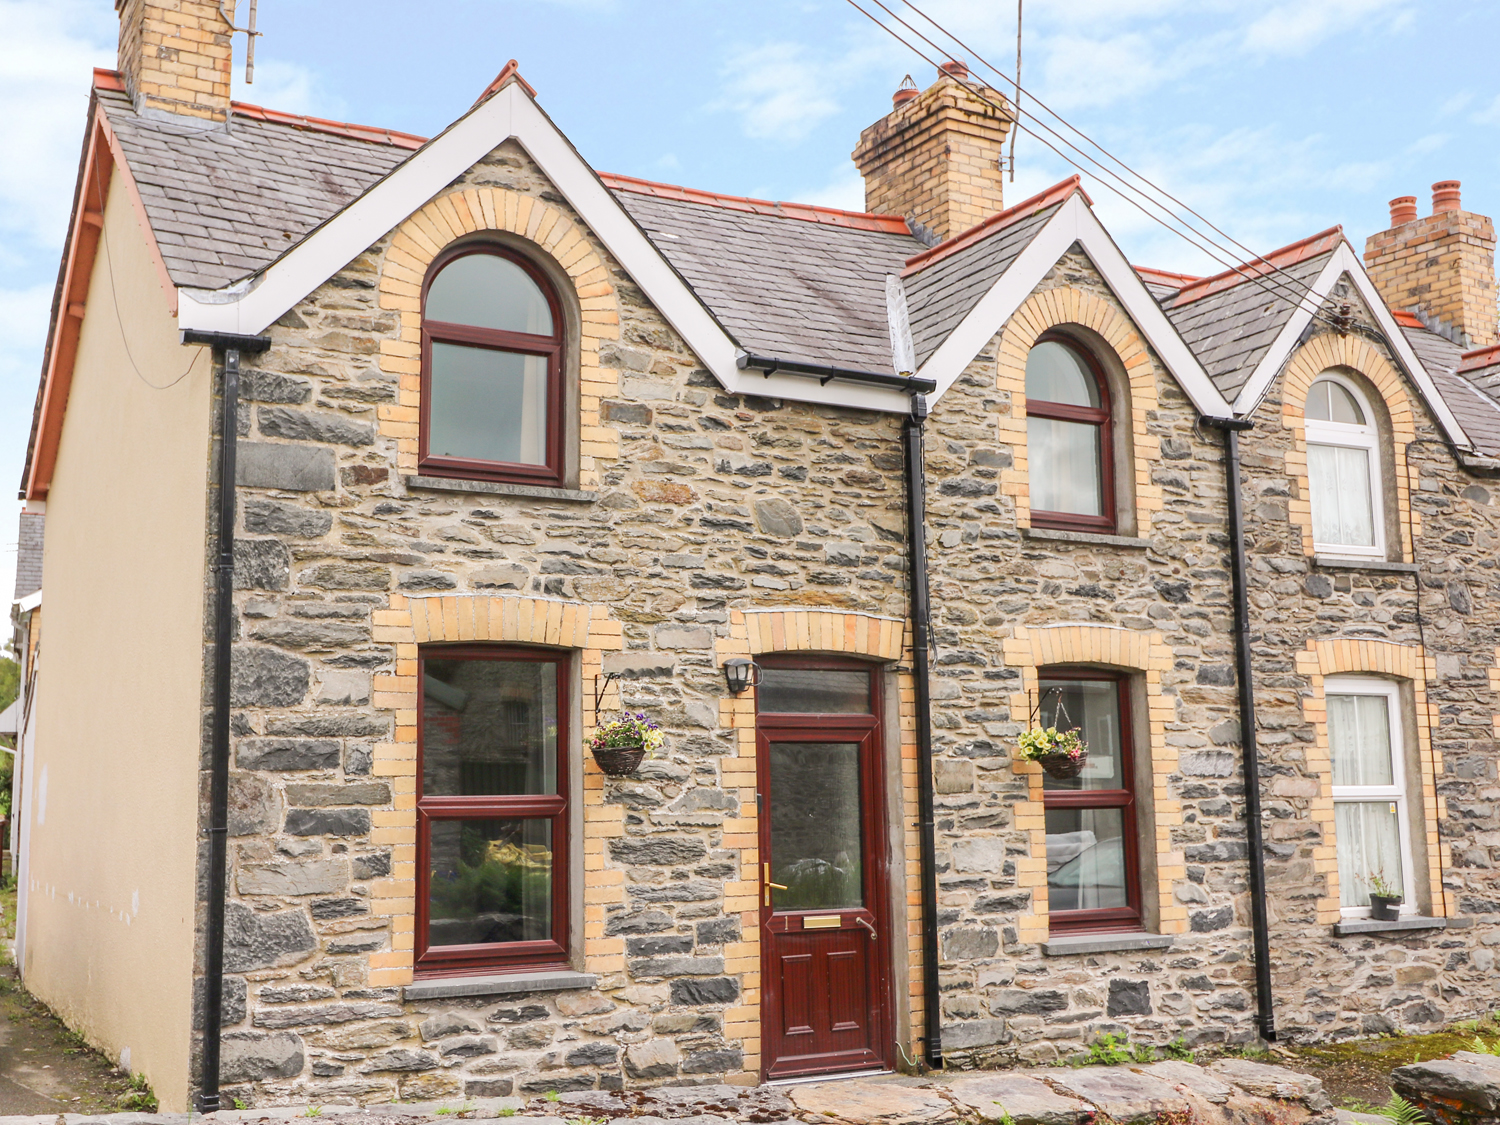 2 bedroom Cottage for rent in Pontrhydfendigaid